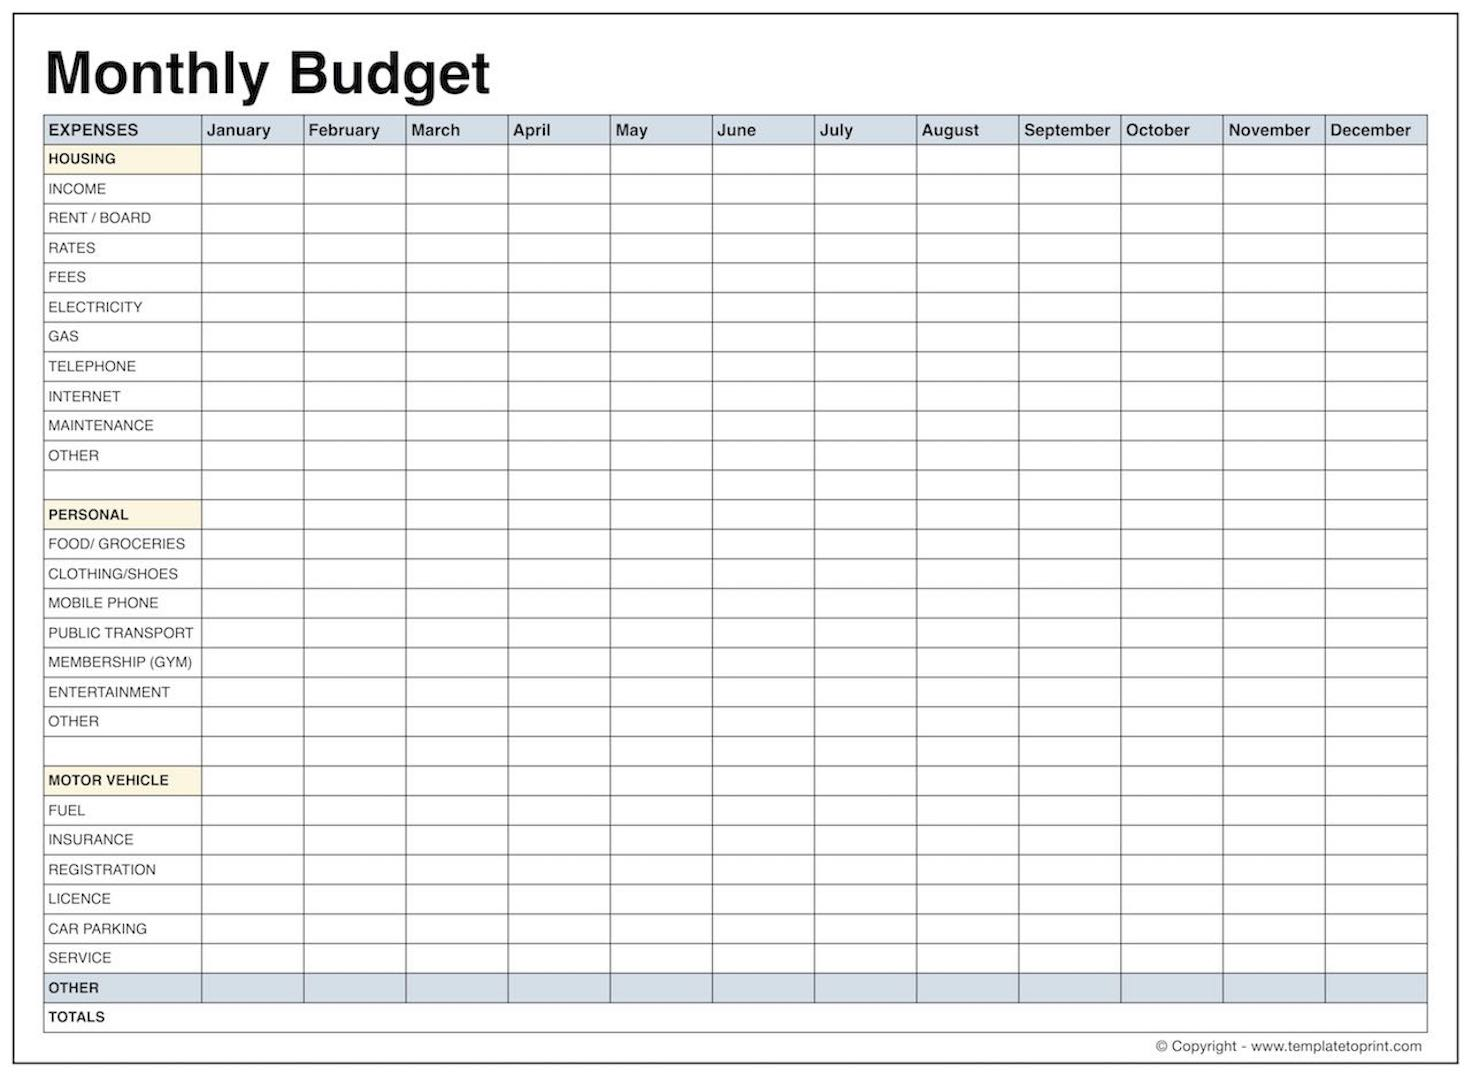 blank monthly budget template pdf samplebusinessresume com simple